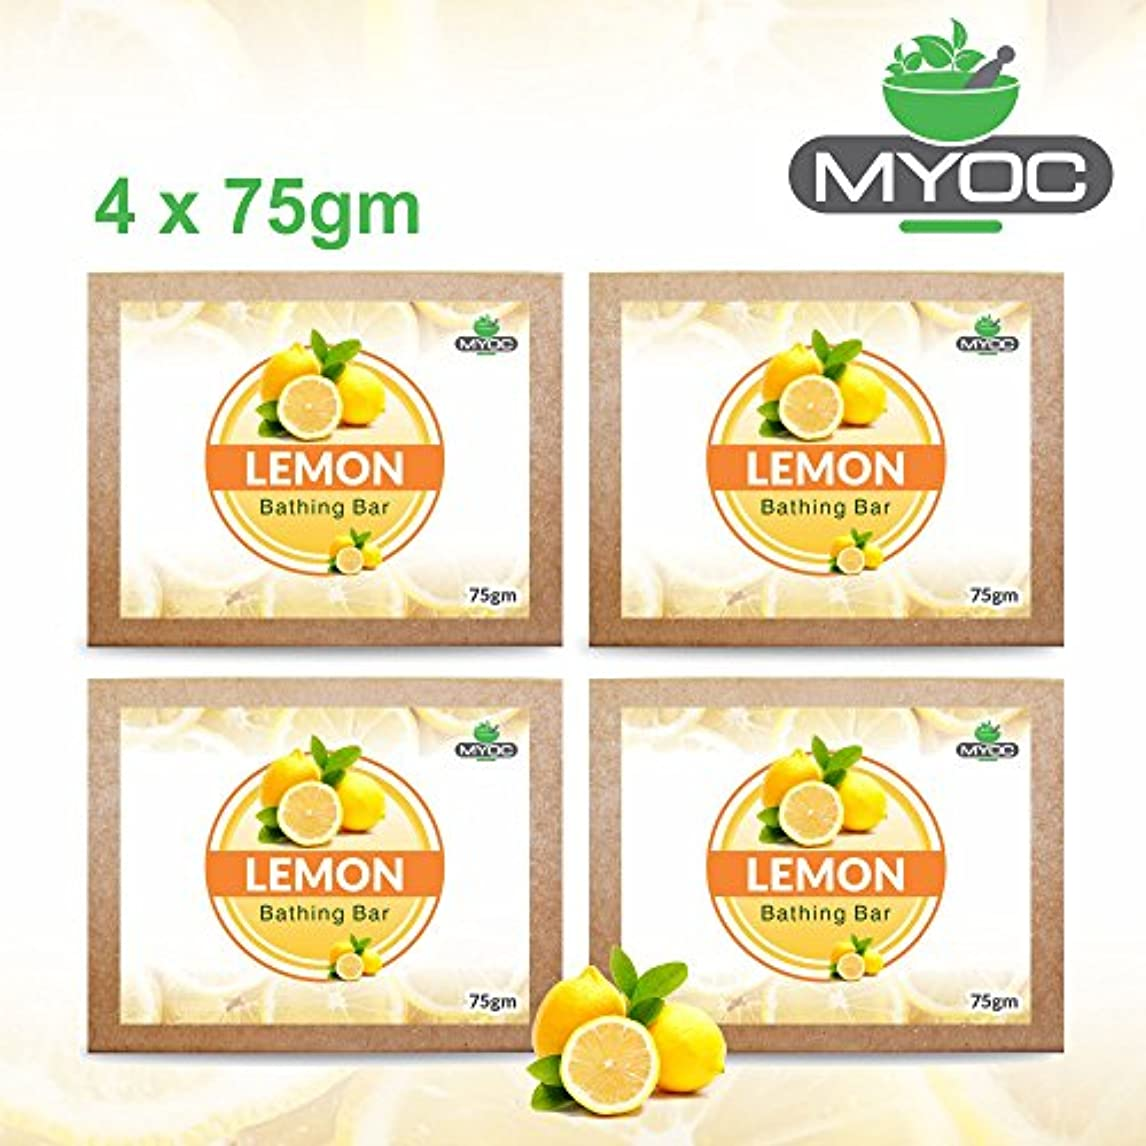 テーブルを設定する城ボイラーLemon Oil And Vitamin E Astringent Soap, deodorant, antiseptic soap for clogged pores and acne prone skin 75g...